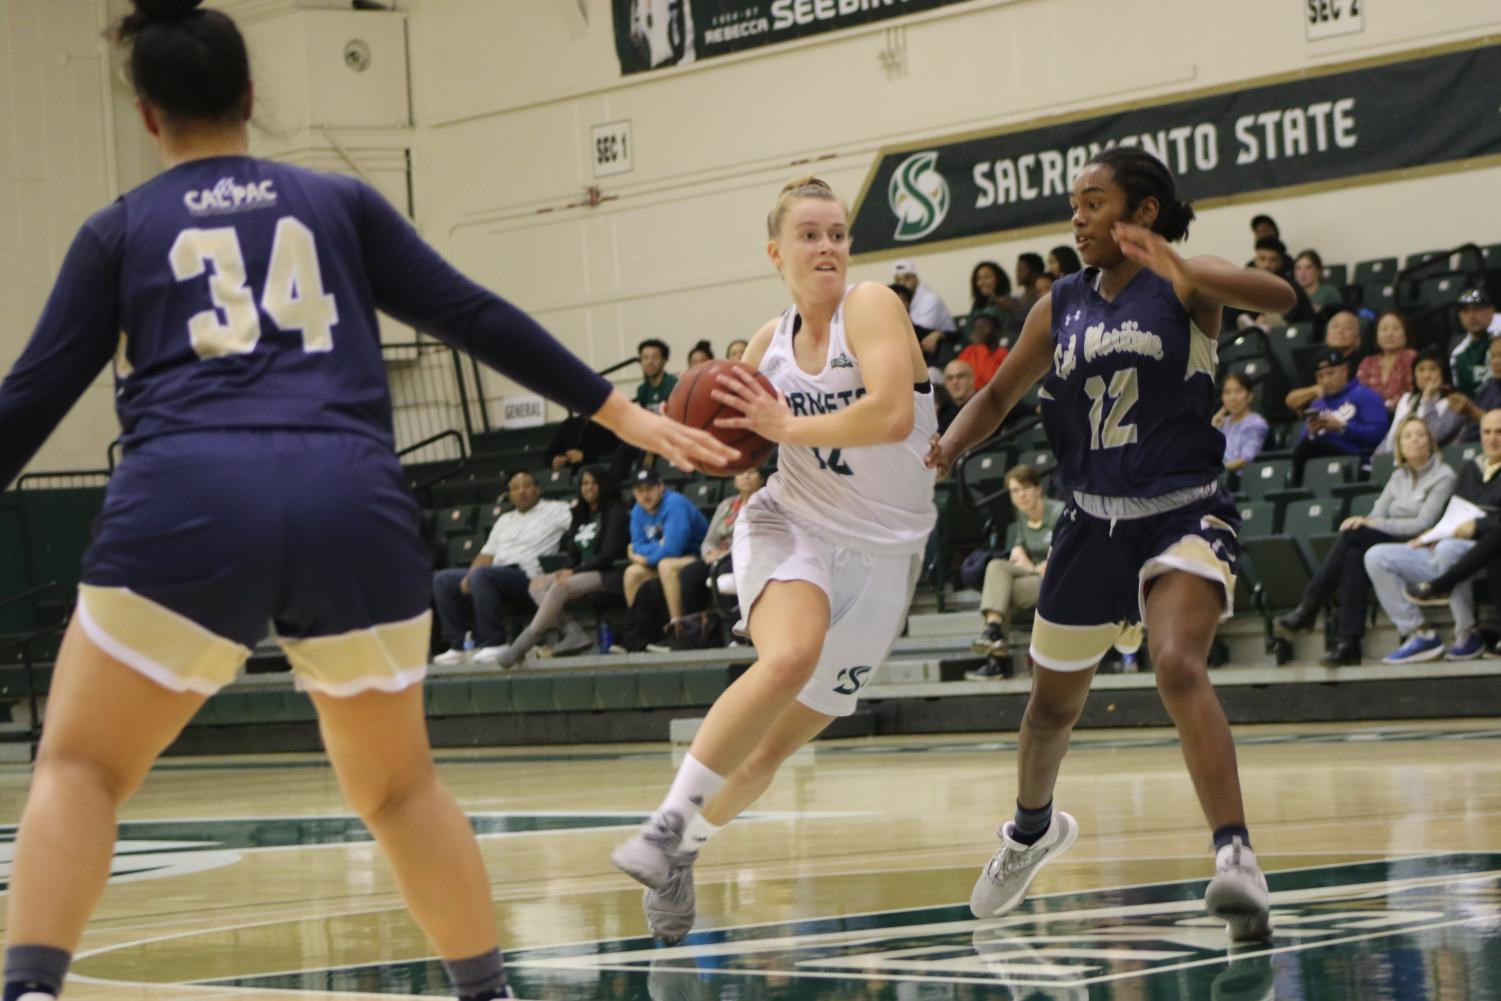 Sac State sophomore guard Emily Enochs drives to the basket against Cal State Maritime Academy on Wednesday, Nov. 13 at The Nest. The Hornets beat the Keelhaulers 86- 55.